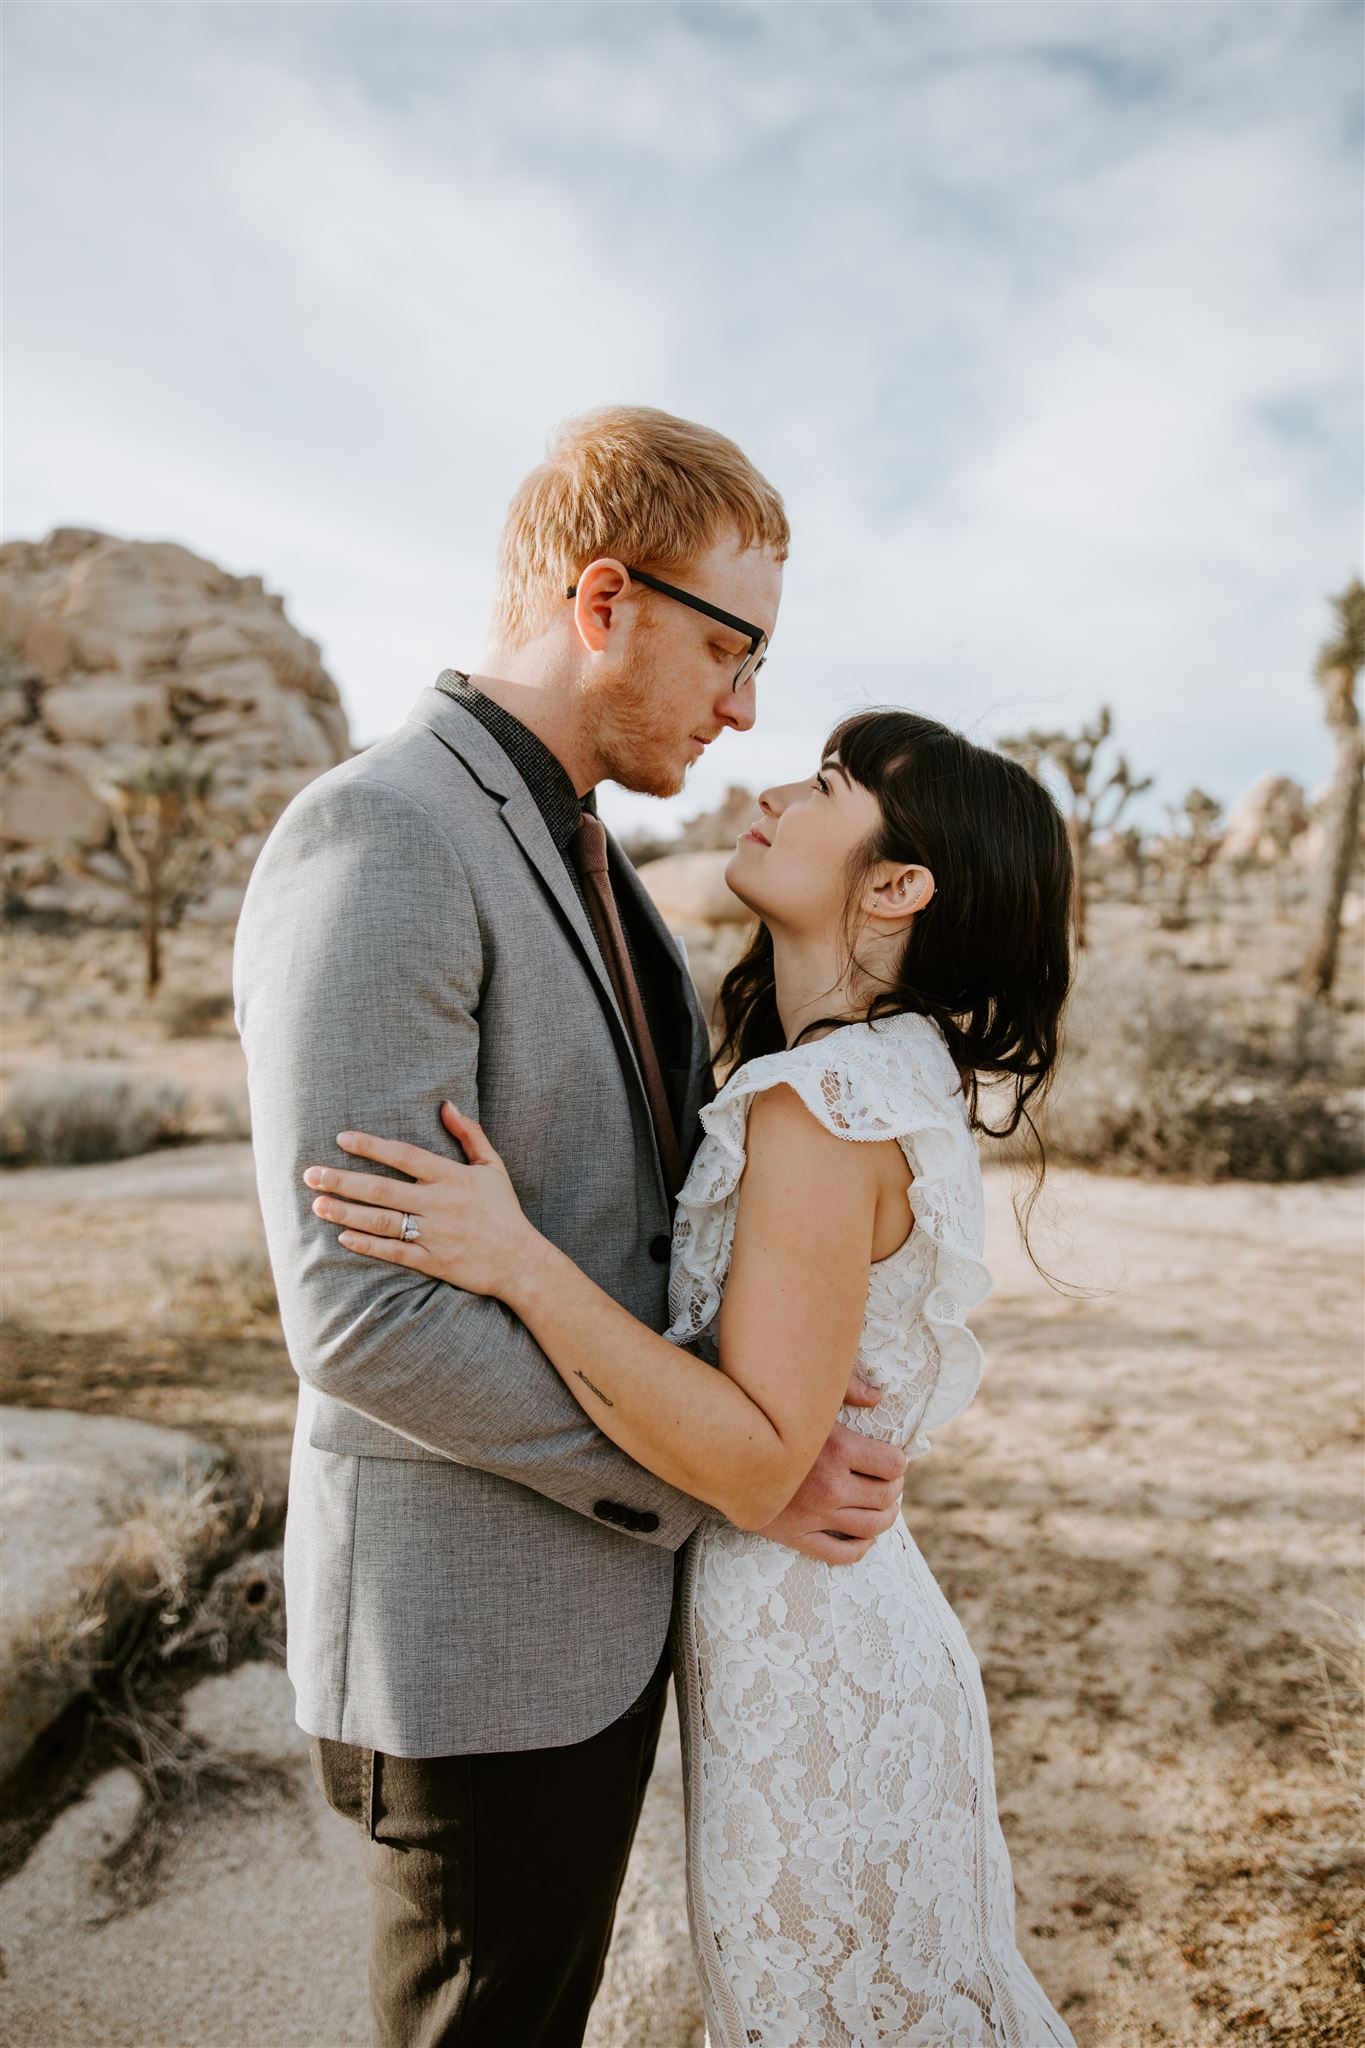 Joshua Tree CA Elopement Wedding  Photographer May Iosotaluno 49.jpg